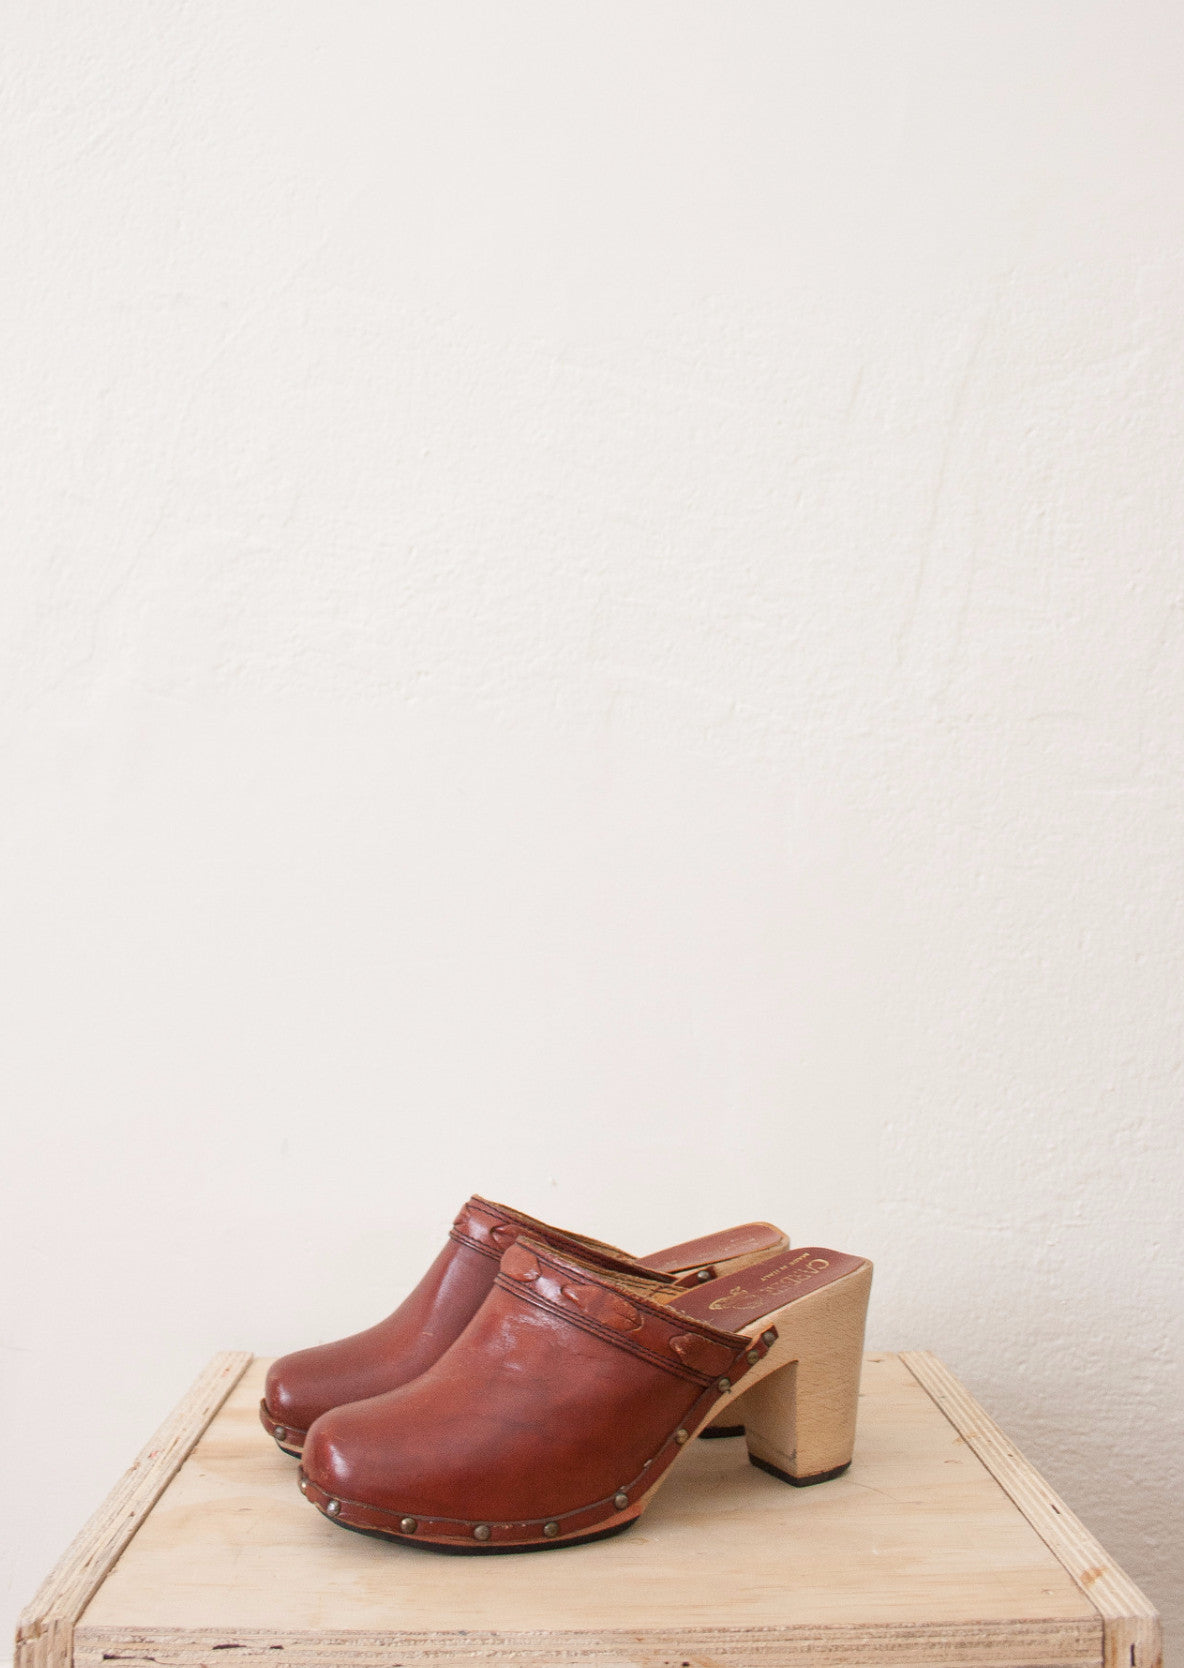 Oxblood Leather Wooden Mules | 6 1/2